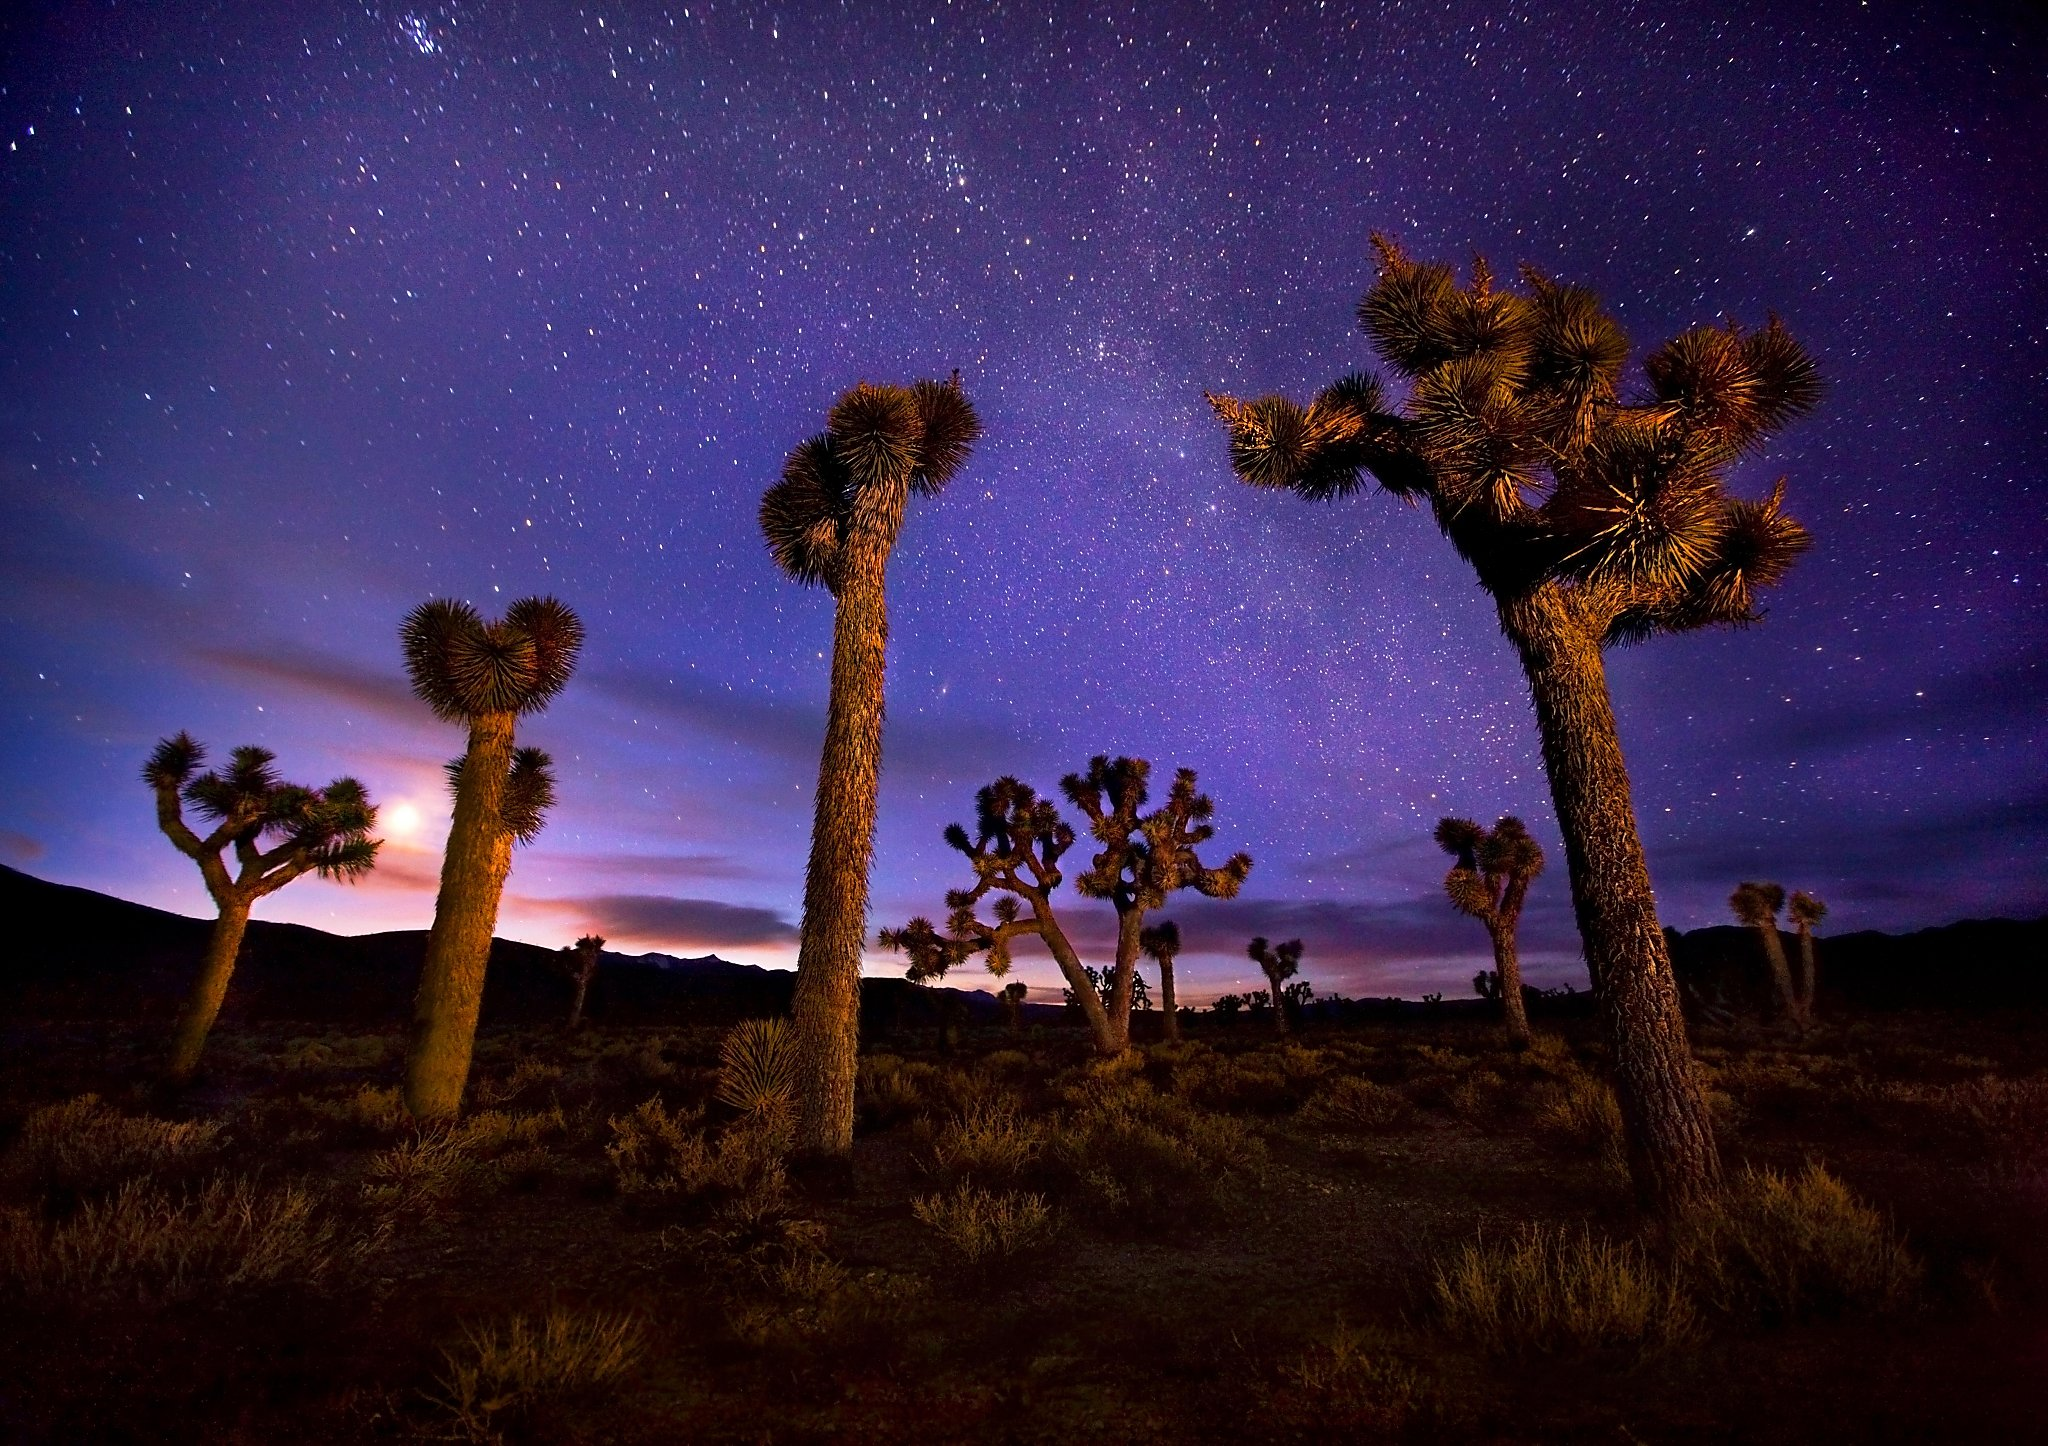 California's best 4 spots for stargazing - SFChronicle com